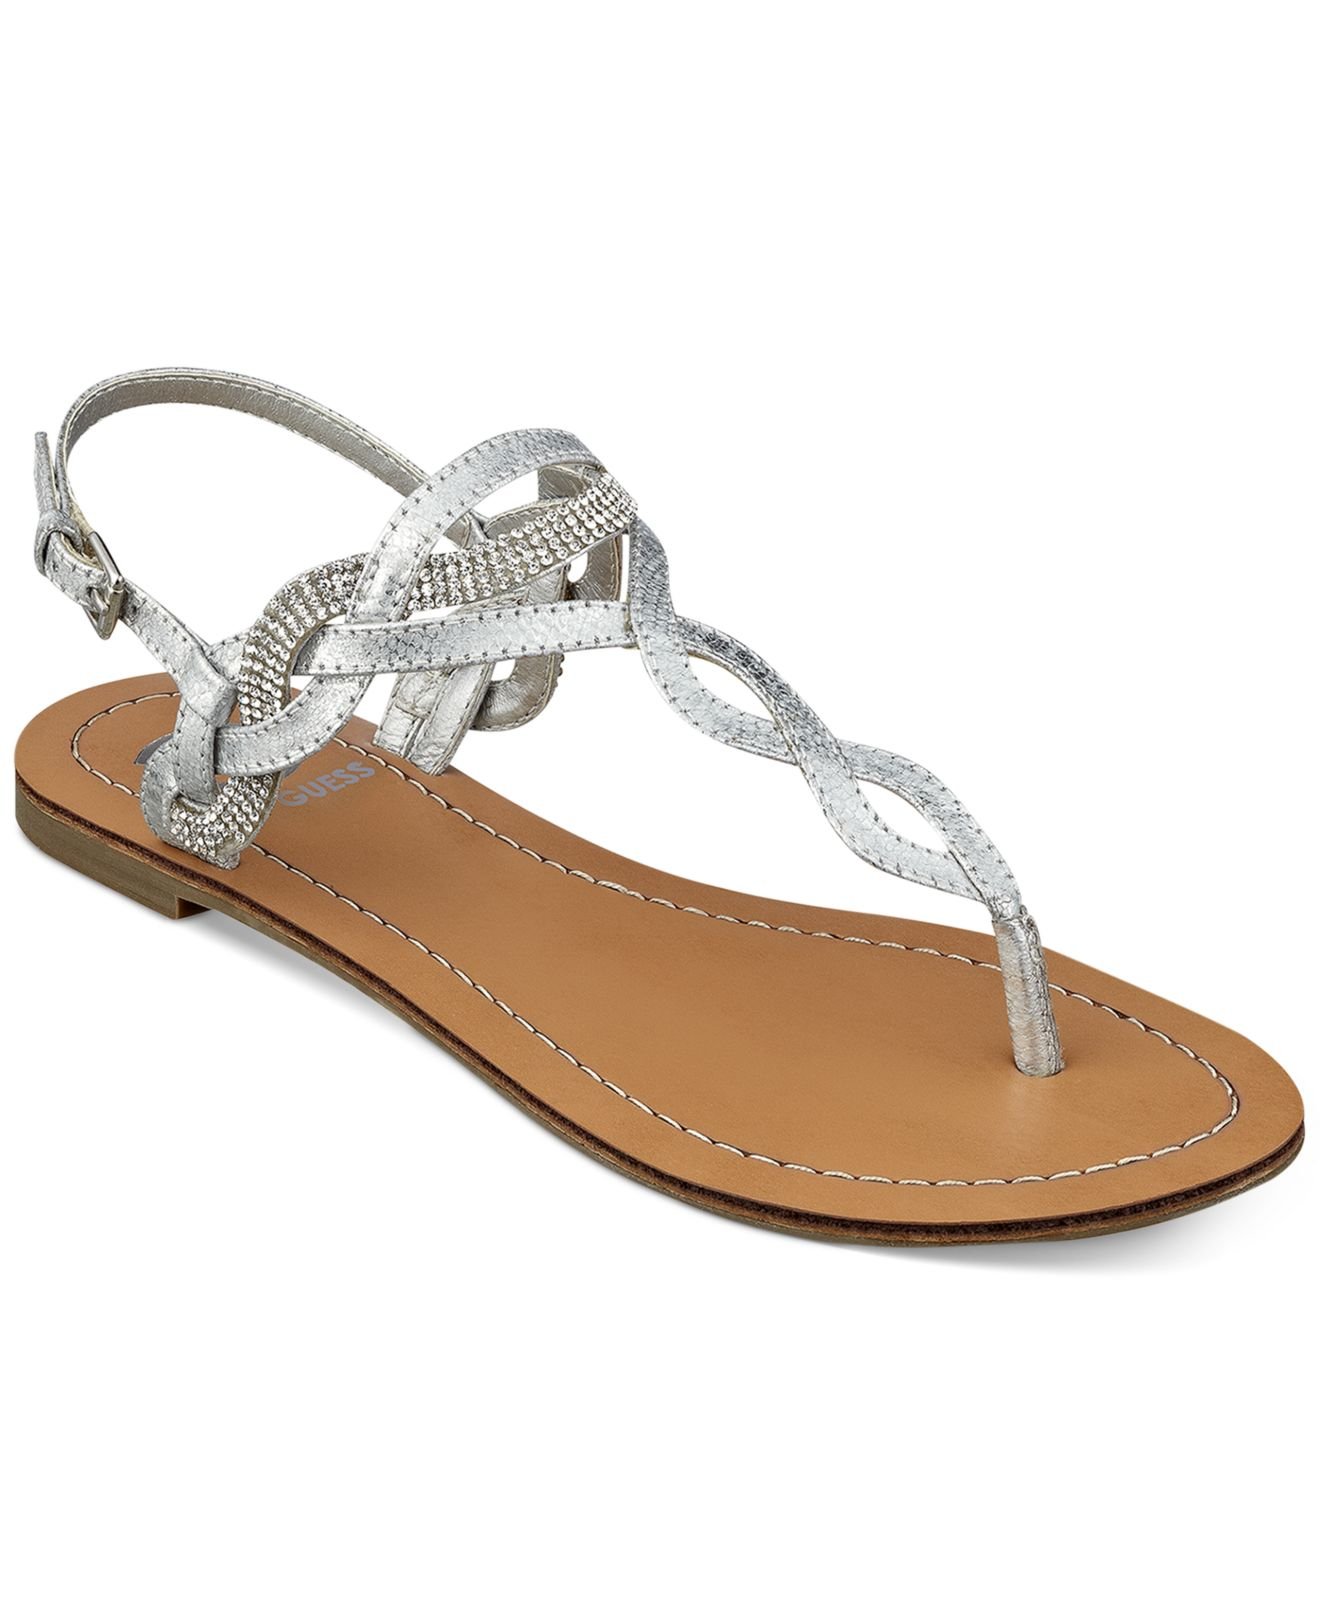 58949c160 Lyst - G by Guess Women S Karolee Flat Thong Sandals in Metallic